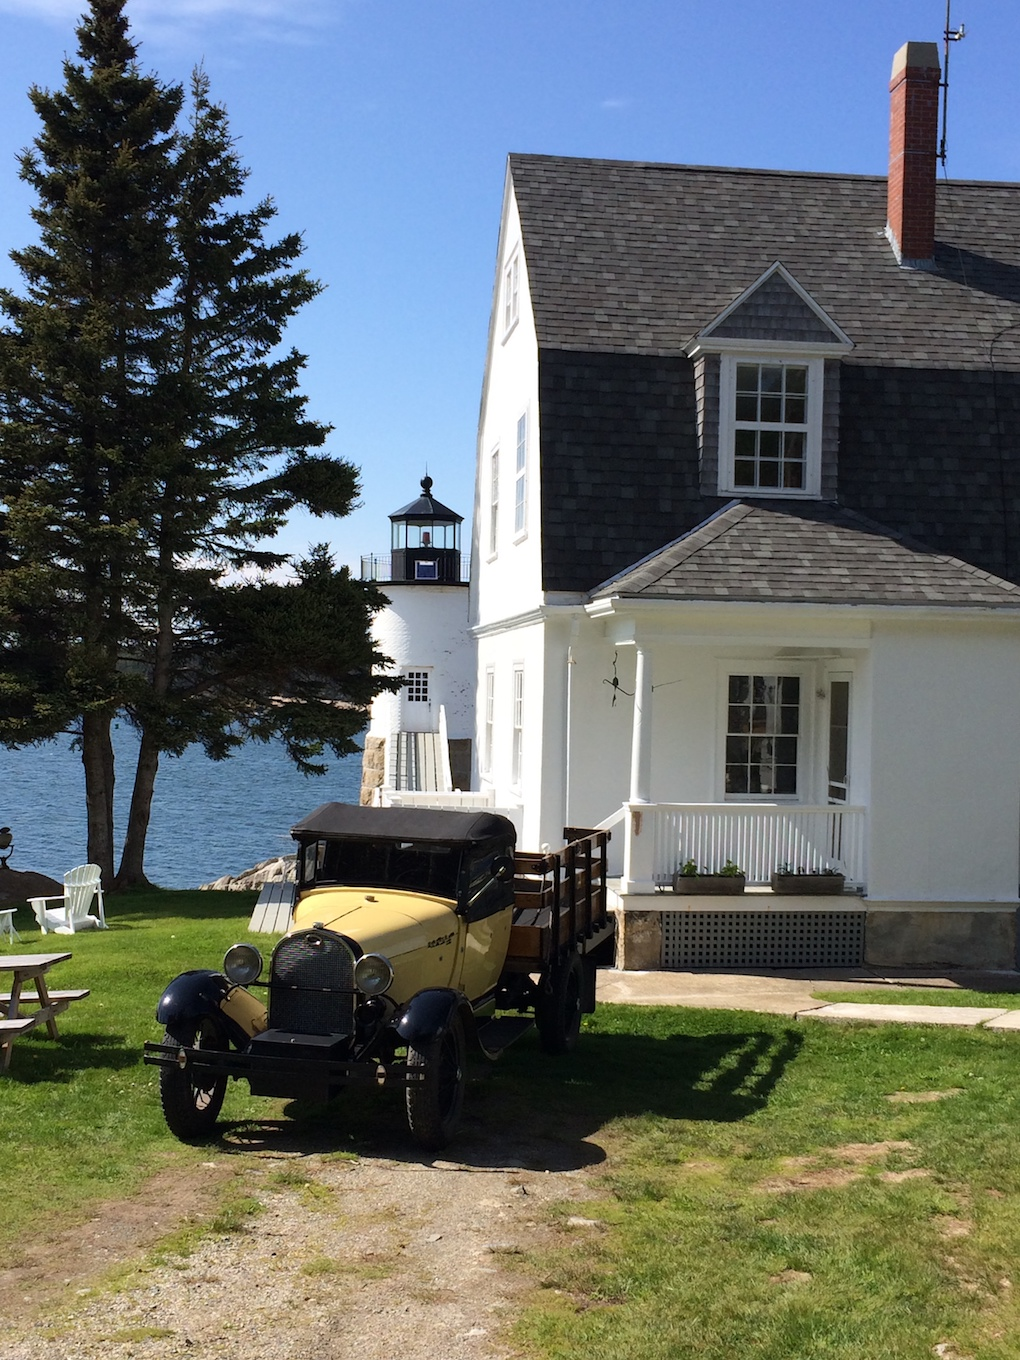 The Keeper's House Inn | Isle au Haut, Maine: Waiting for You